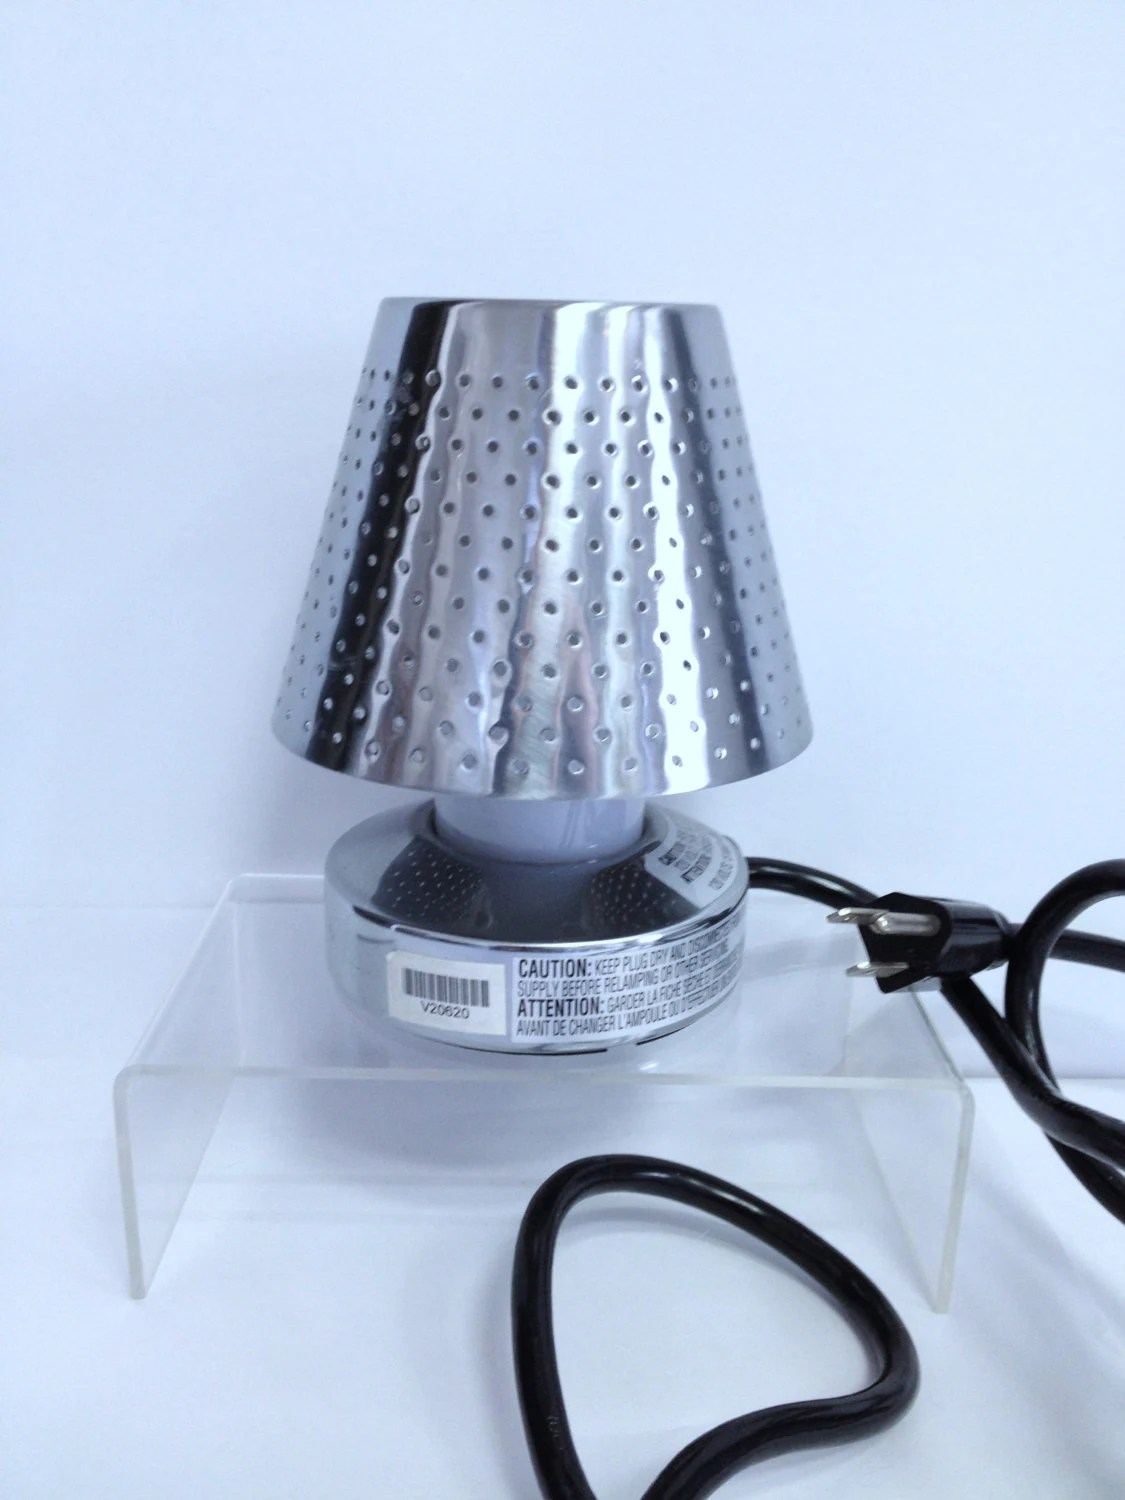 Conair Stainless Steel Lamp Vintage Tiny Lamp Small Steel Lamp